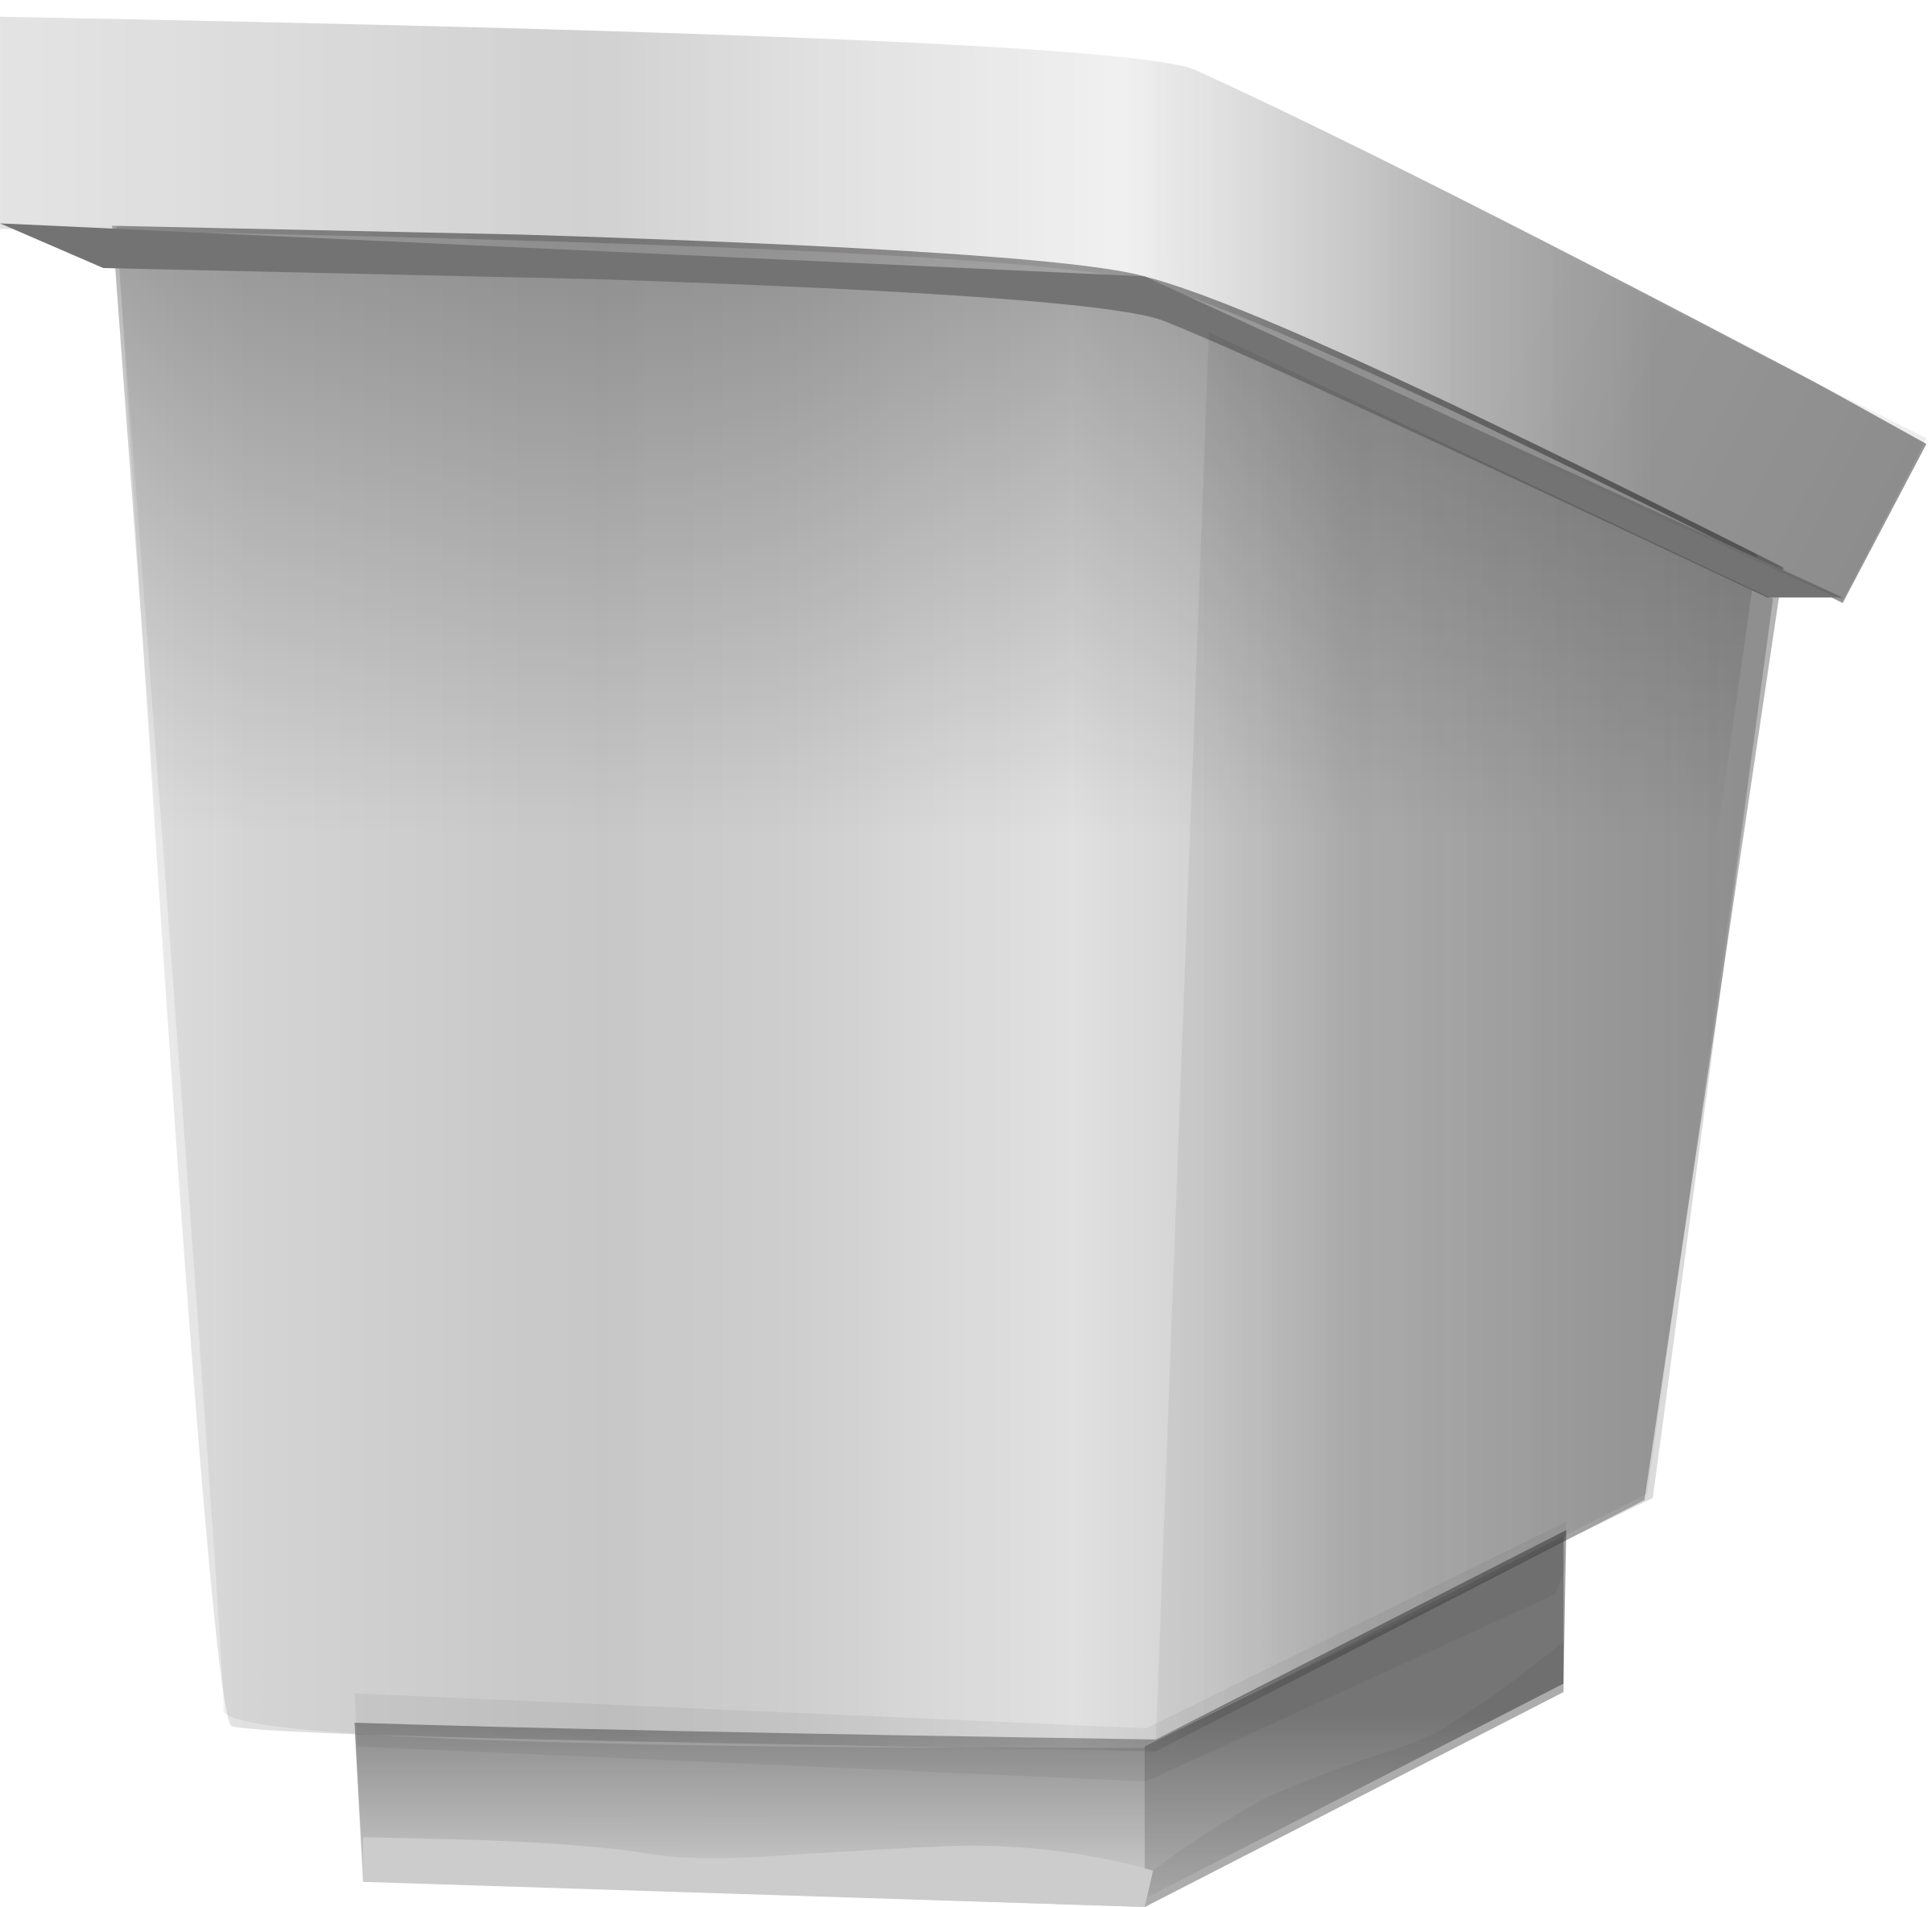 Podium clipart. From glitch big image